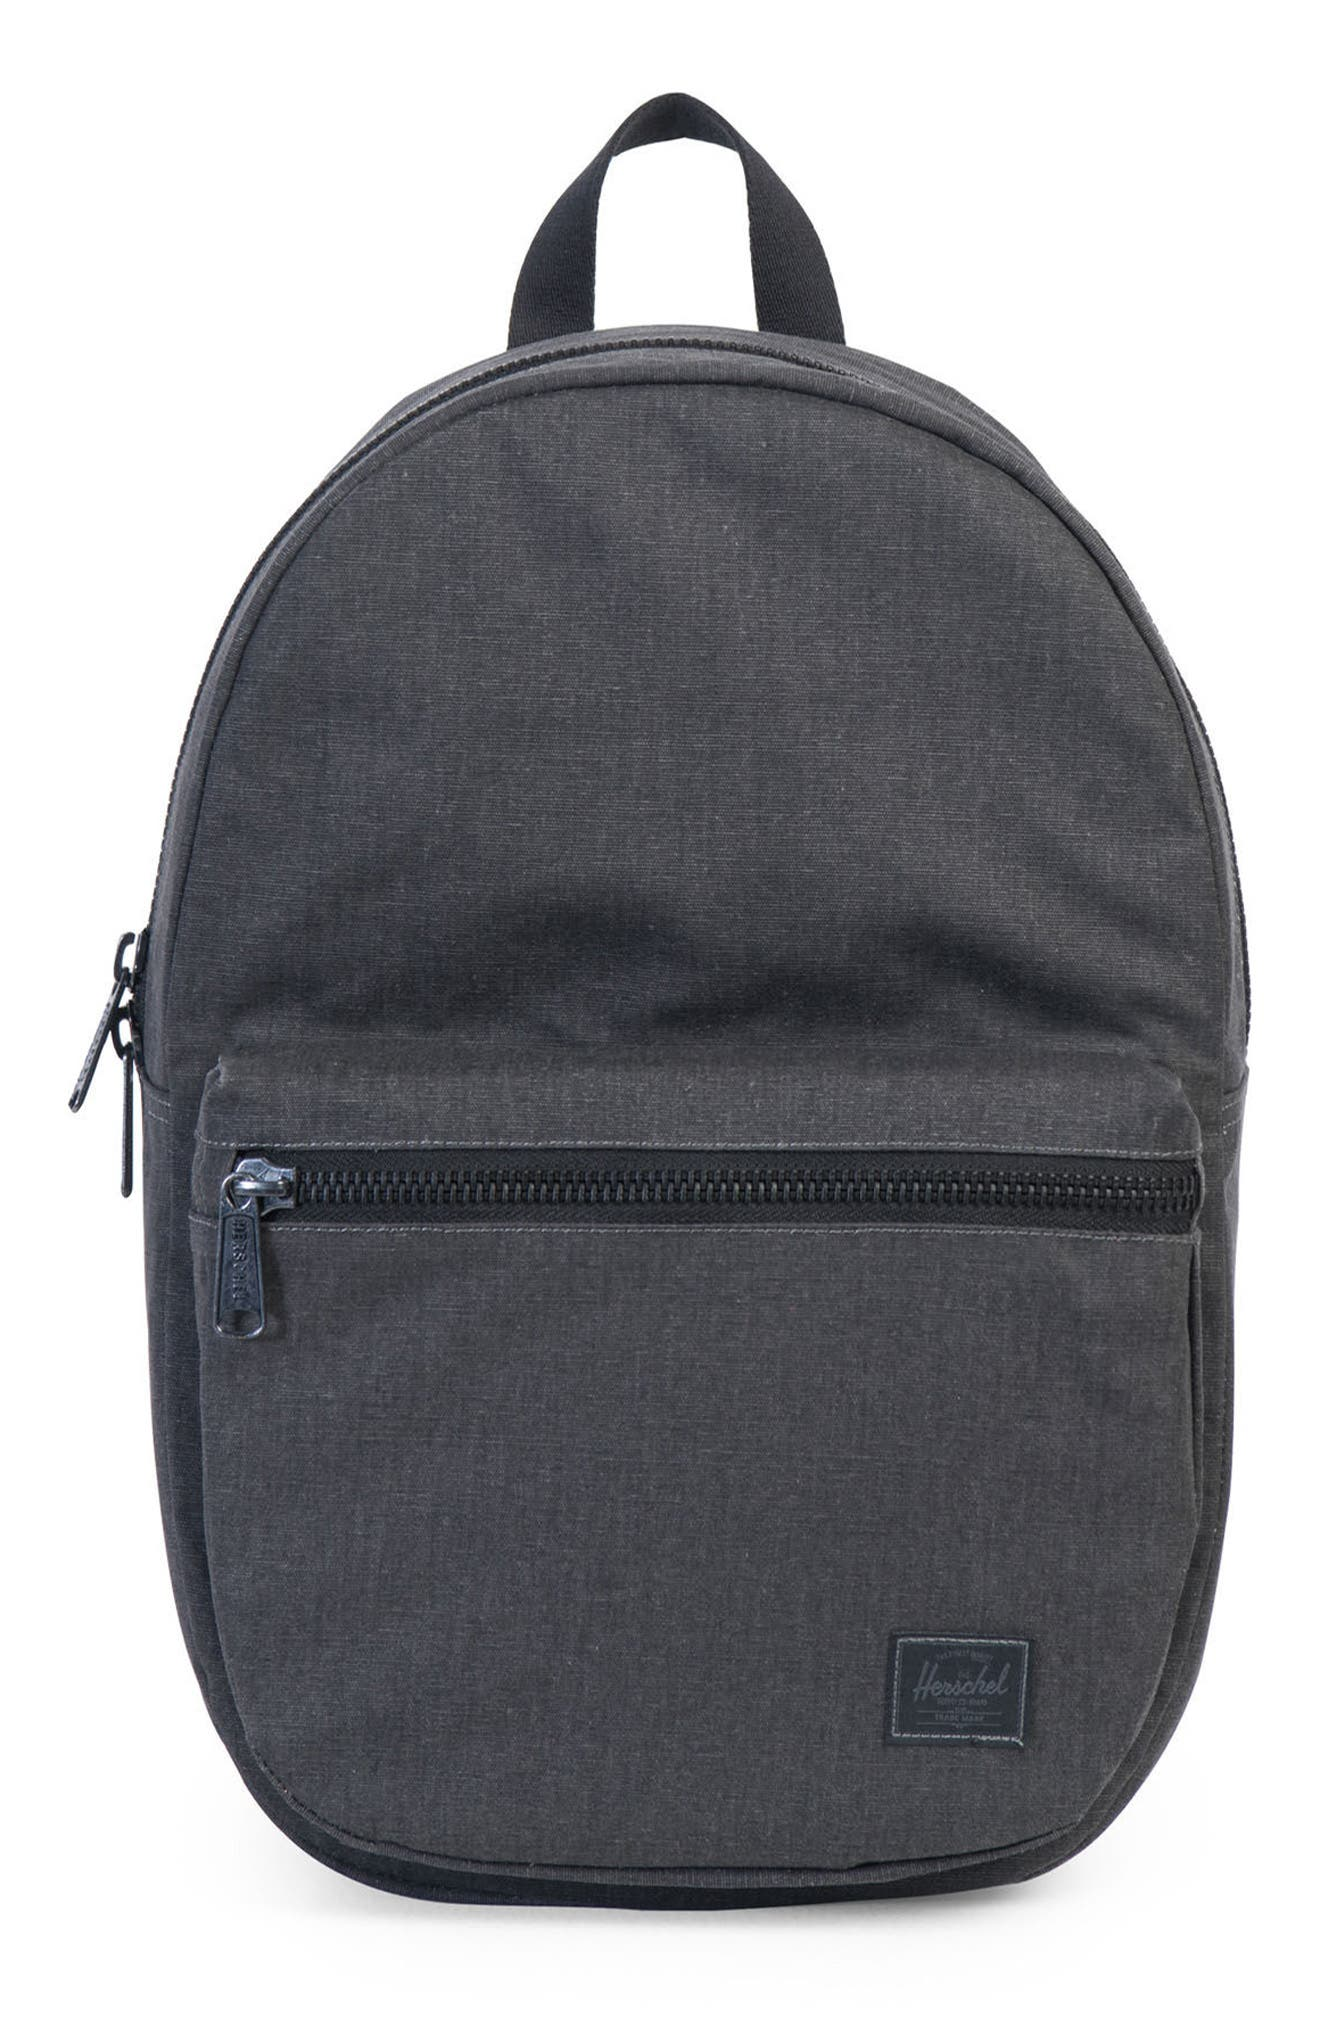 Lawson Backpack,                         Main,                         color, Black Ion Washed